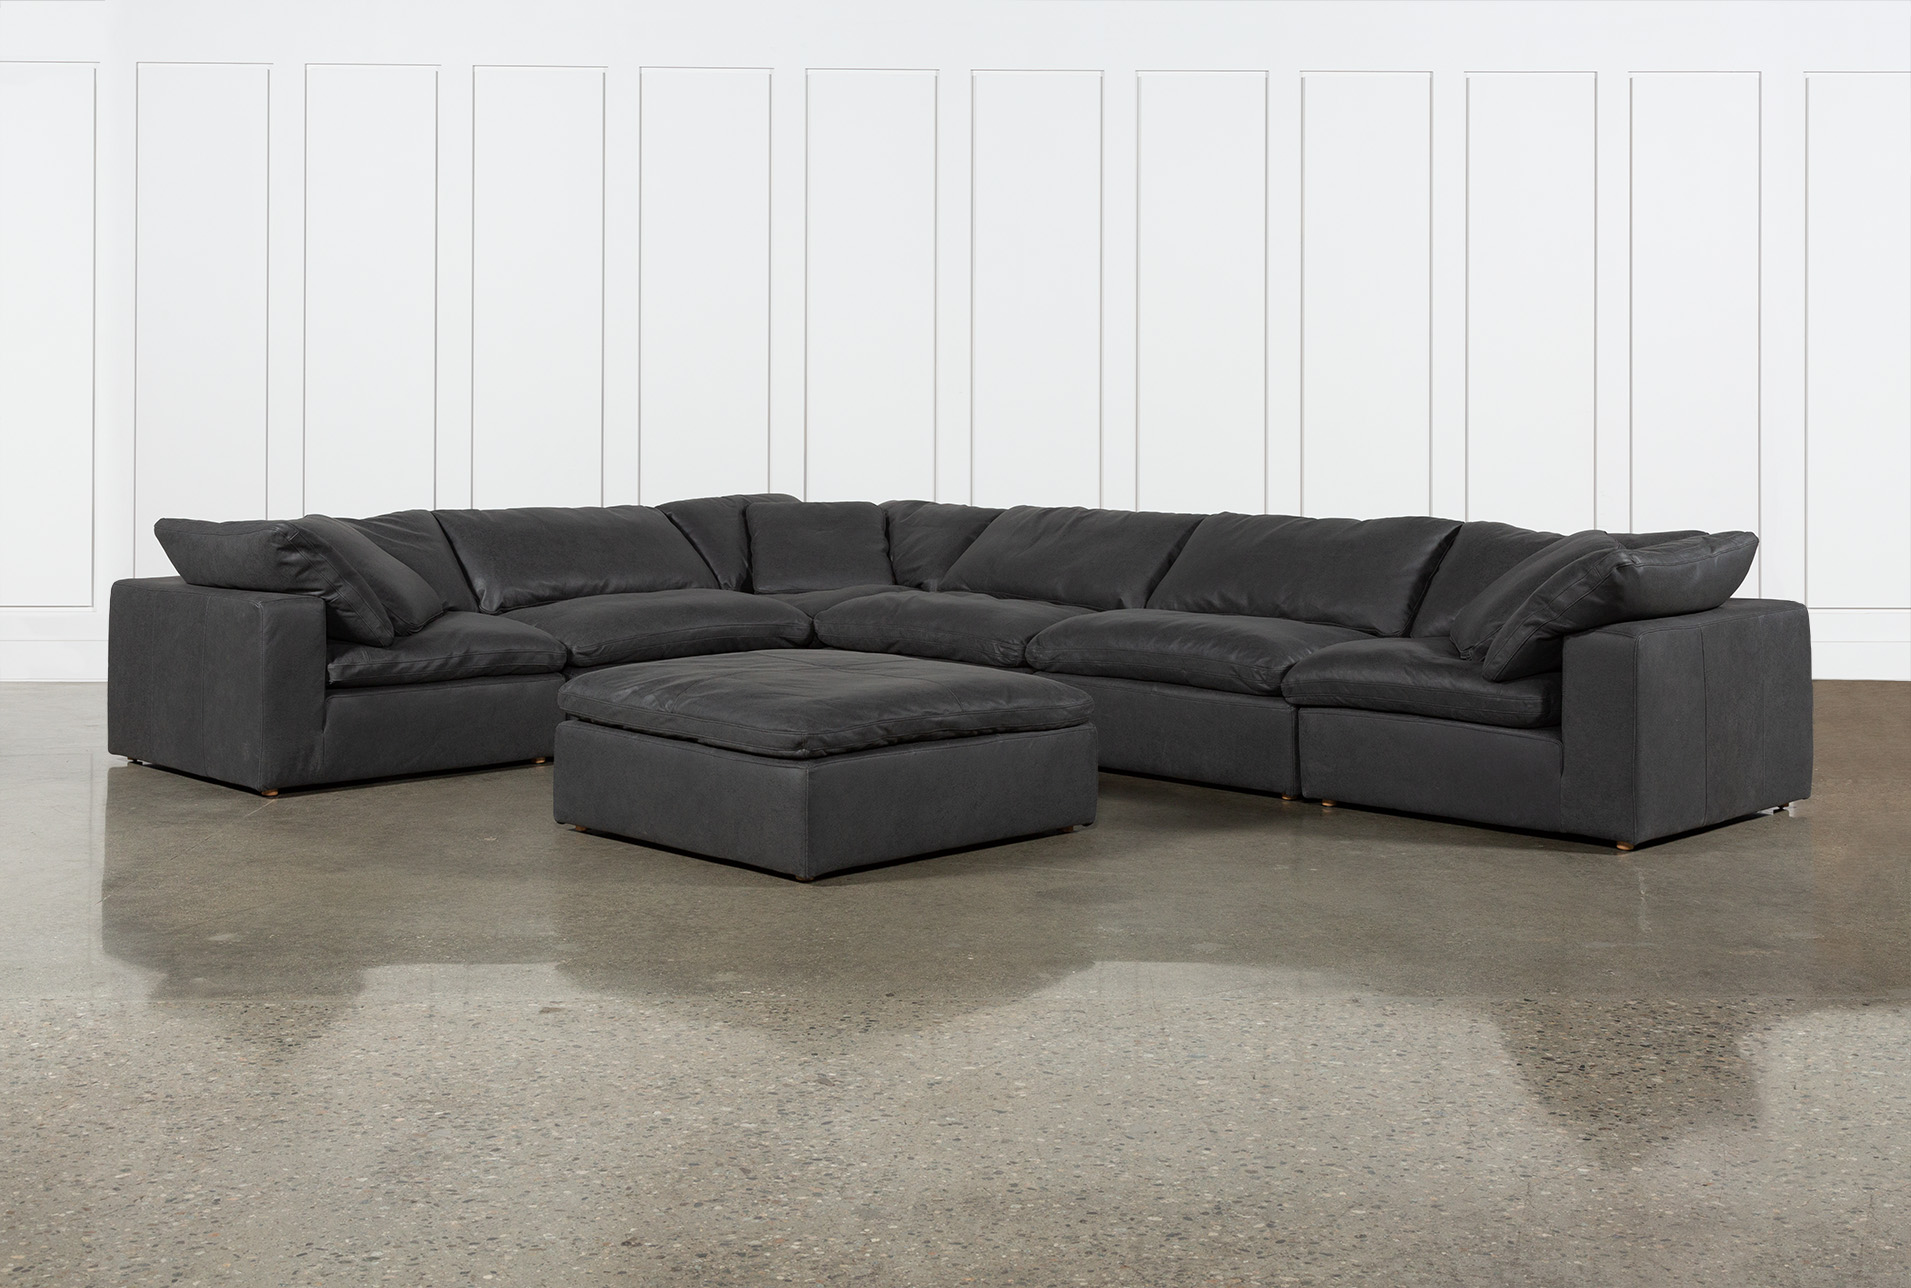 hidden cove grey leather 7 piece 178 sectional with ottoman